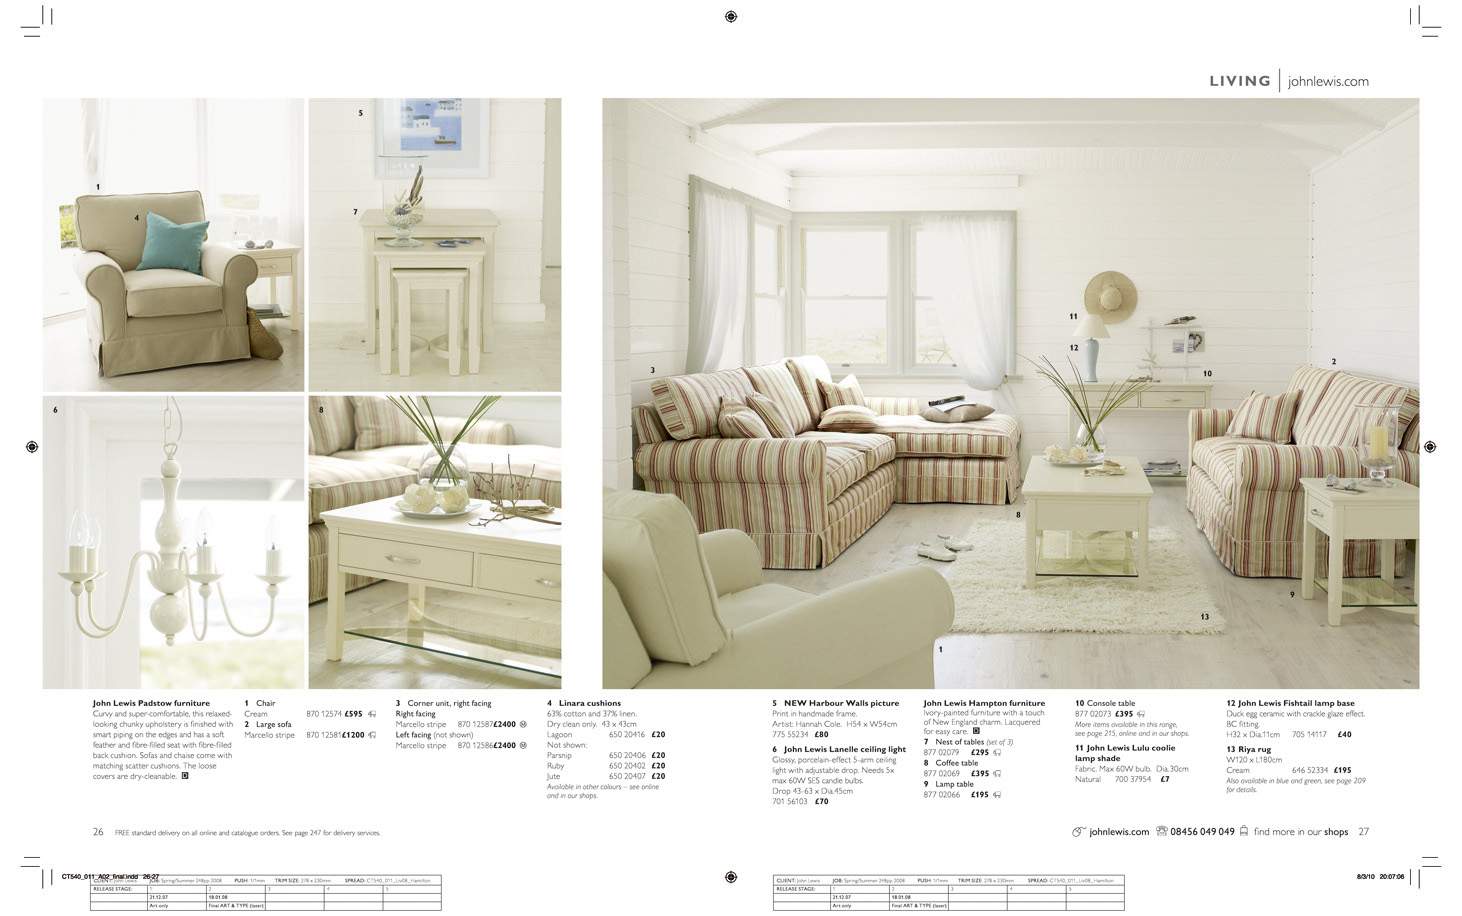 John Lewis Home Brochure Inner Spread FINAL RETOUCHED